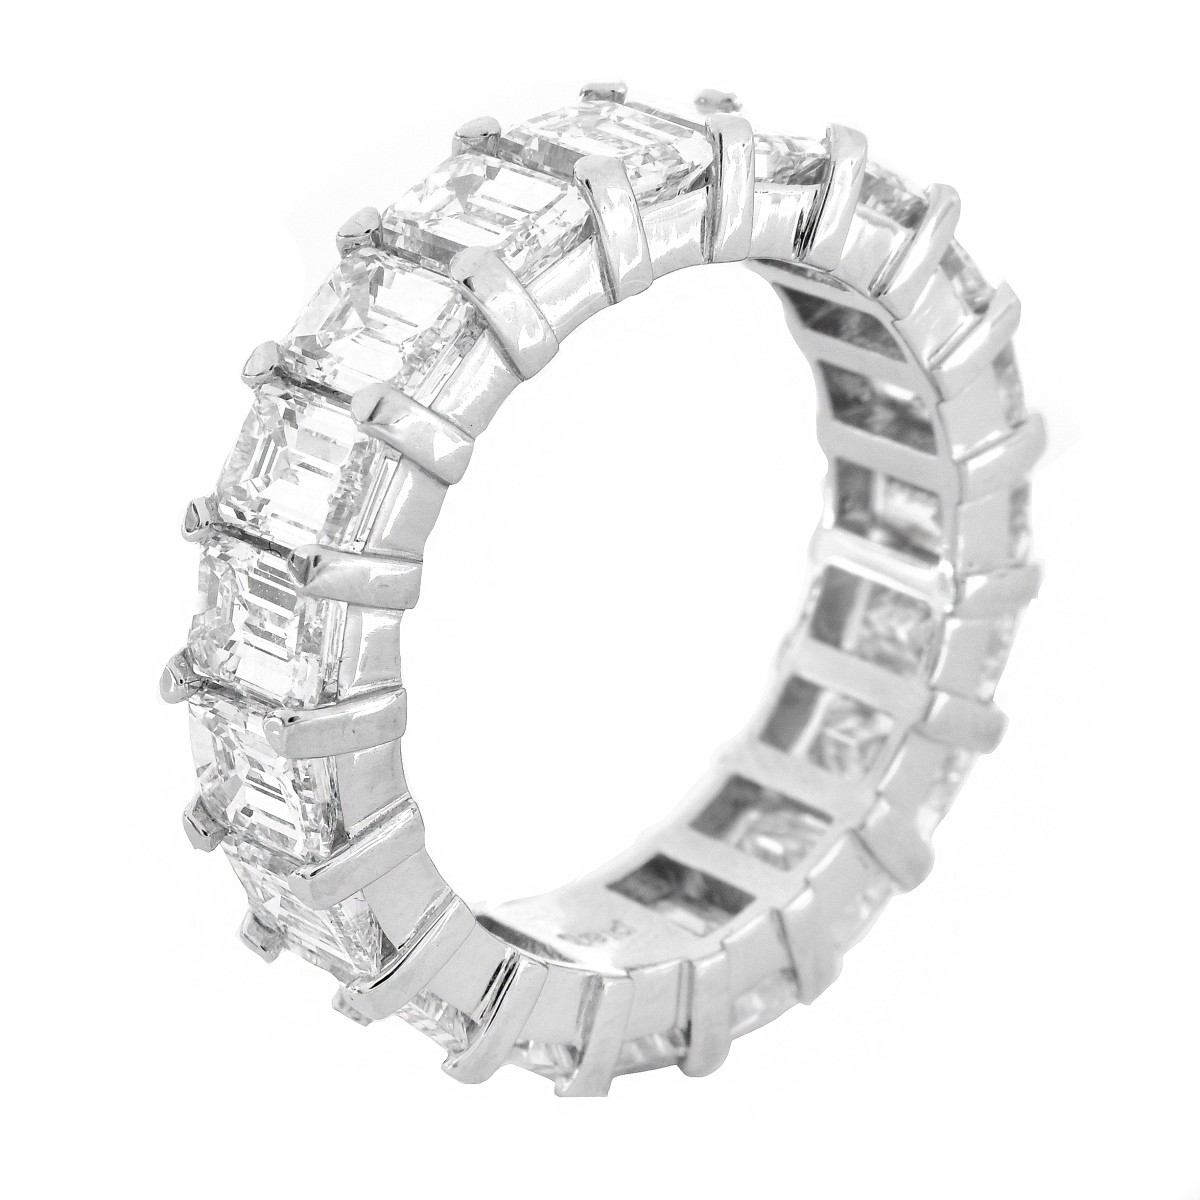 7.0 Carat Diamond and Platinum Eternity Band